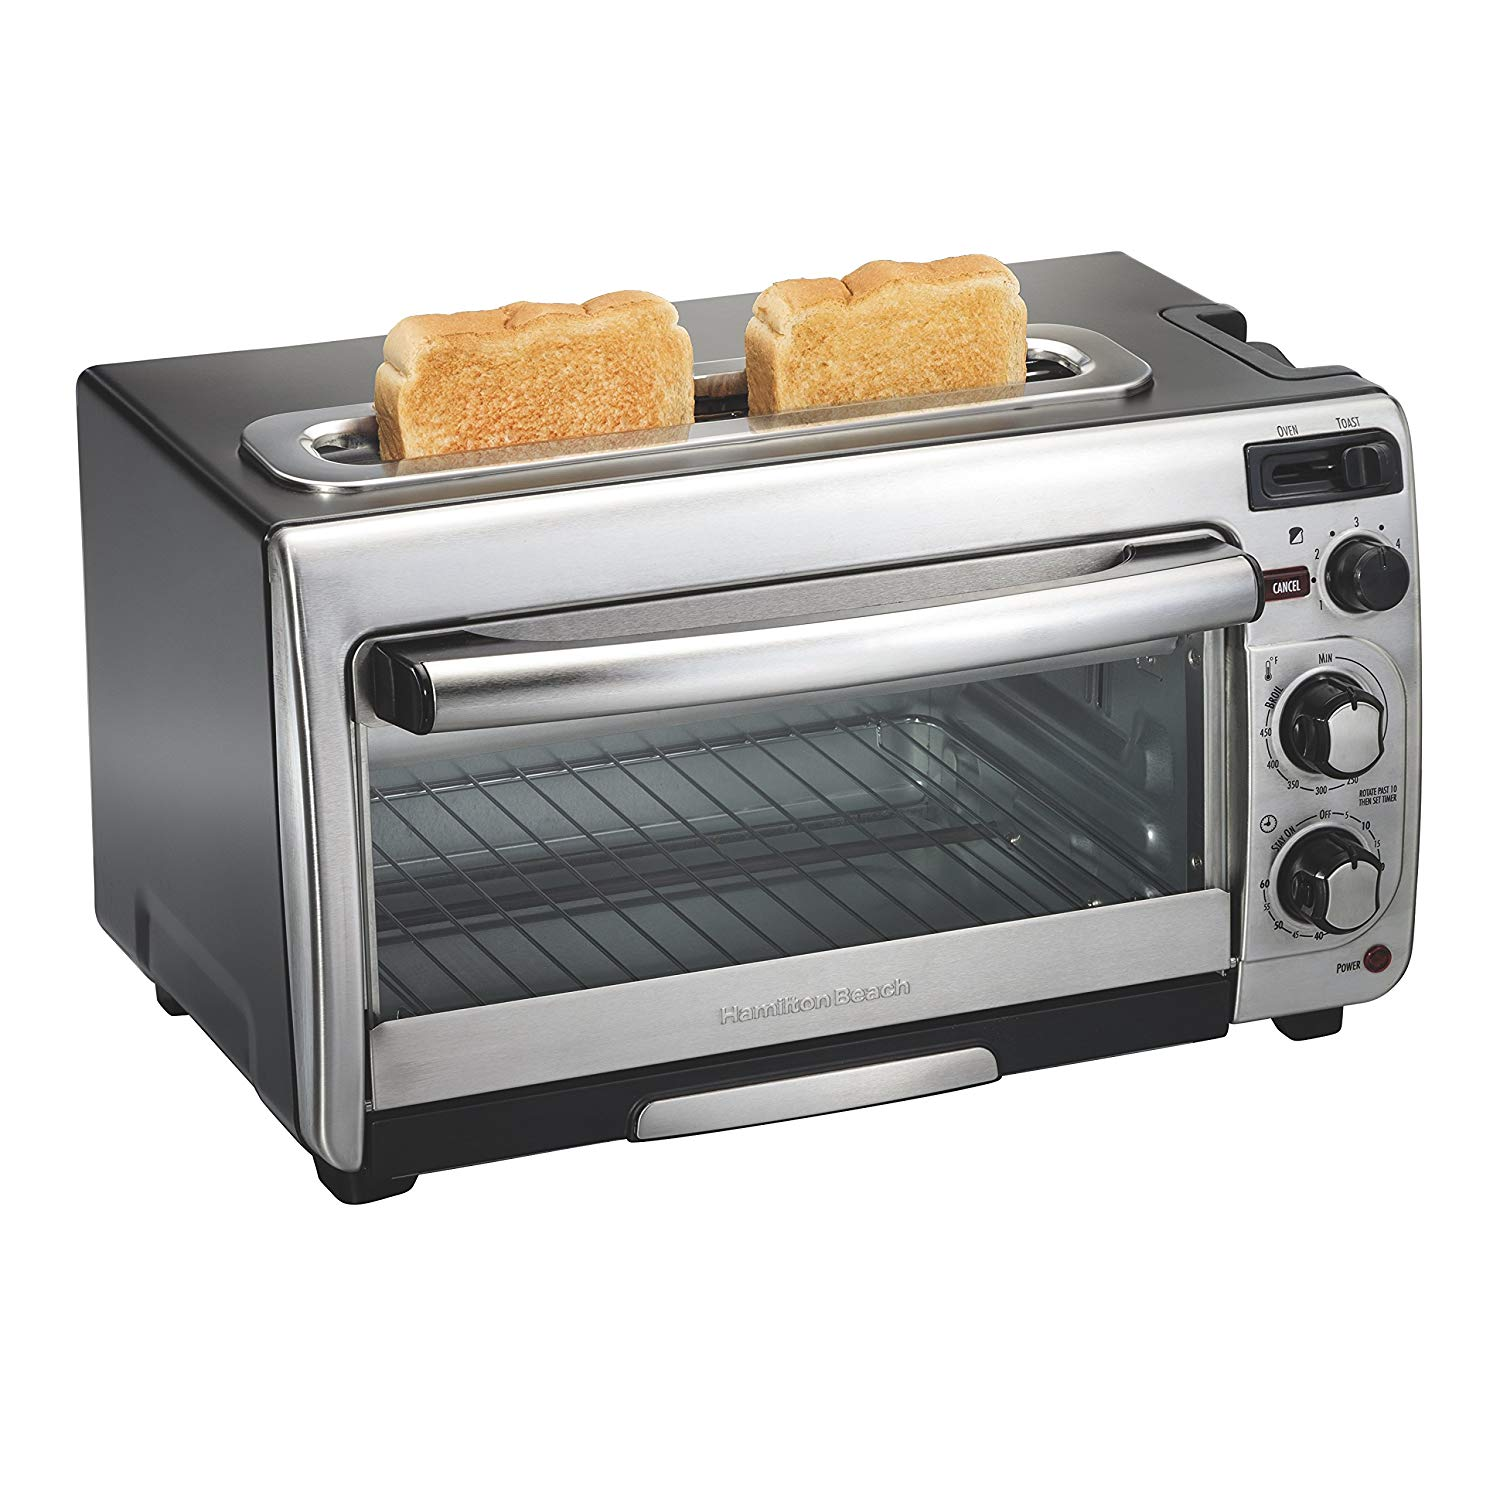 Hamilton Beach 2-in-1 Countertop Oven